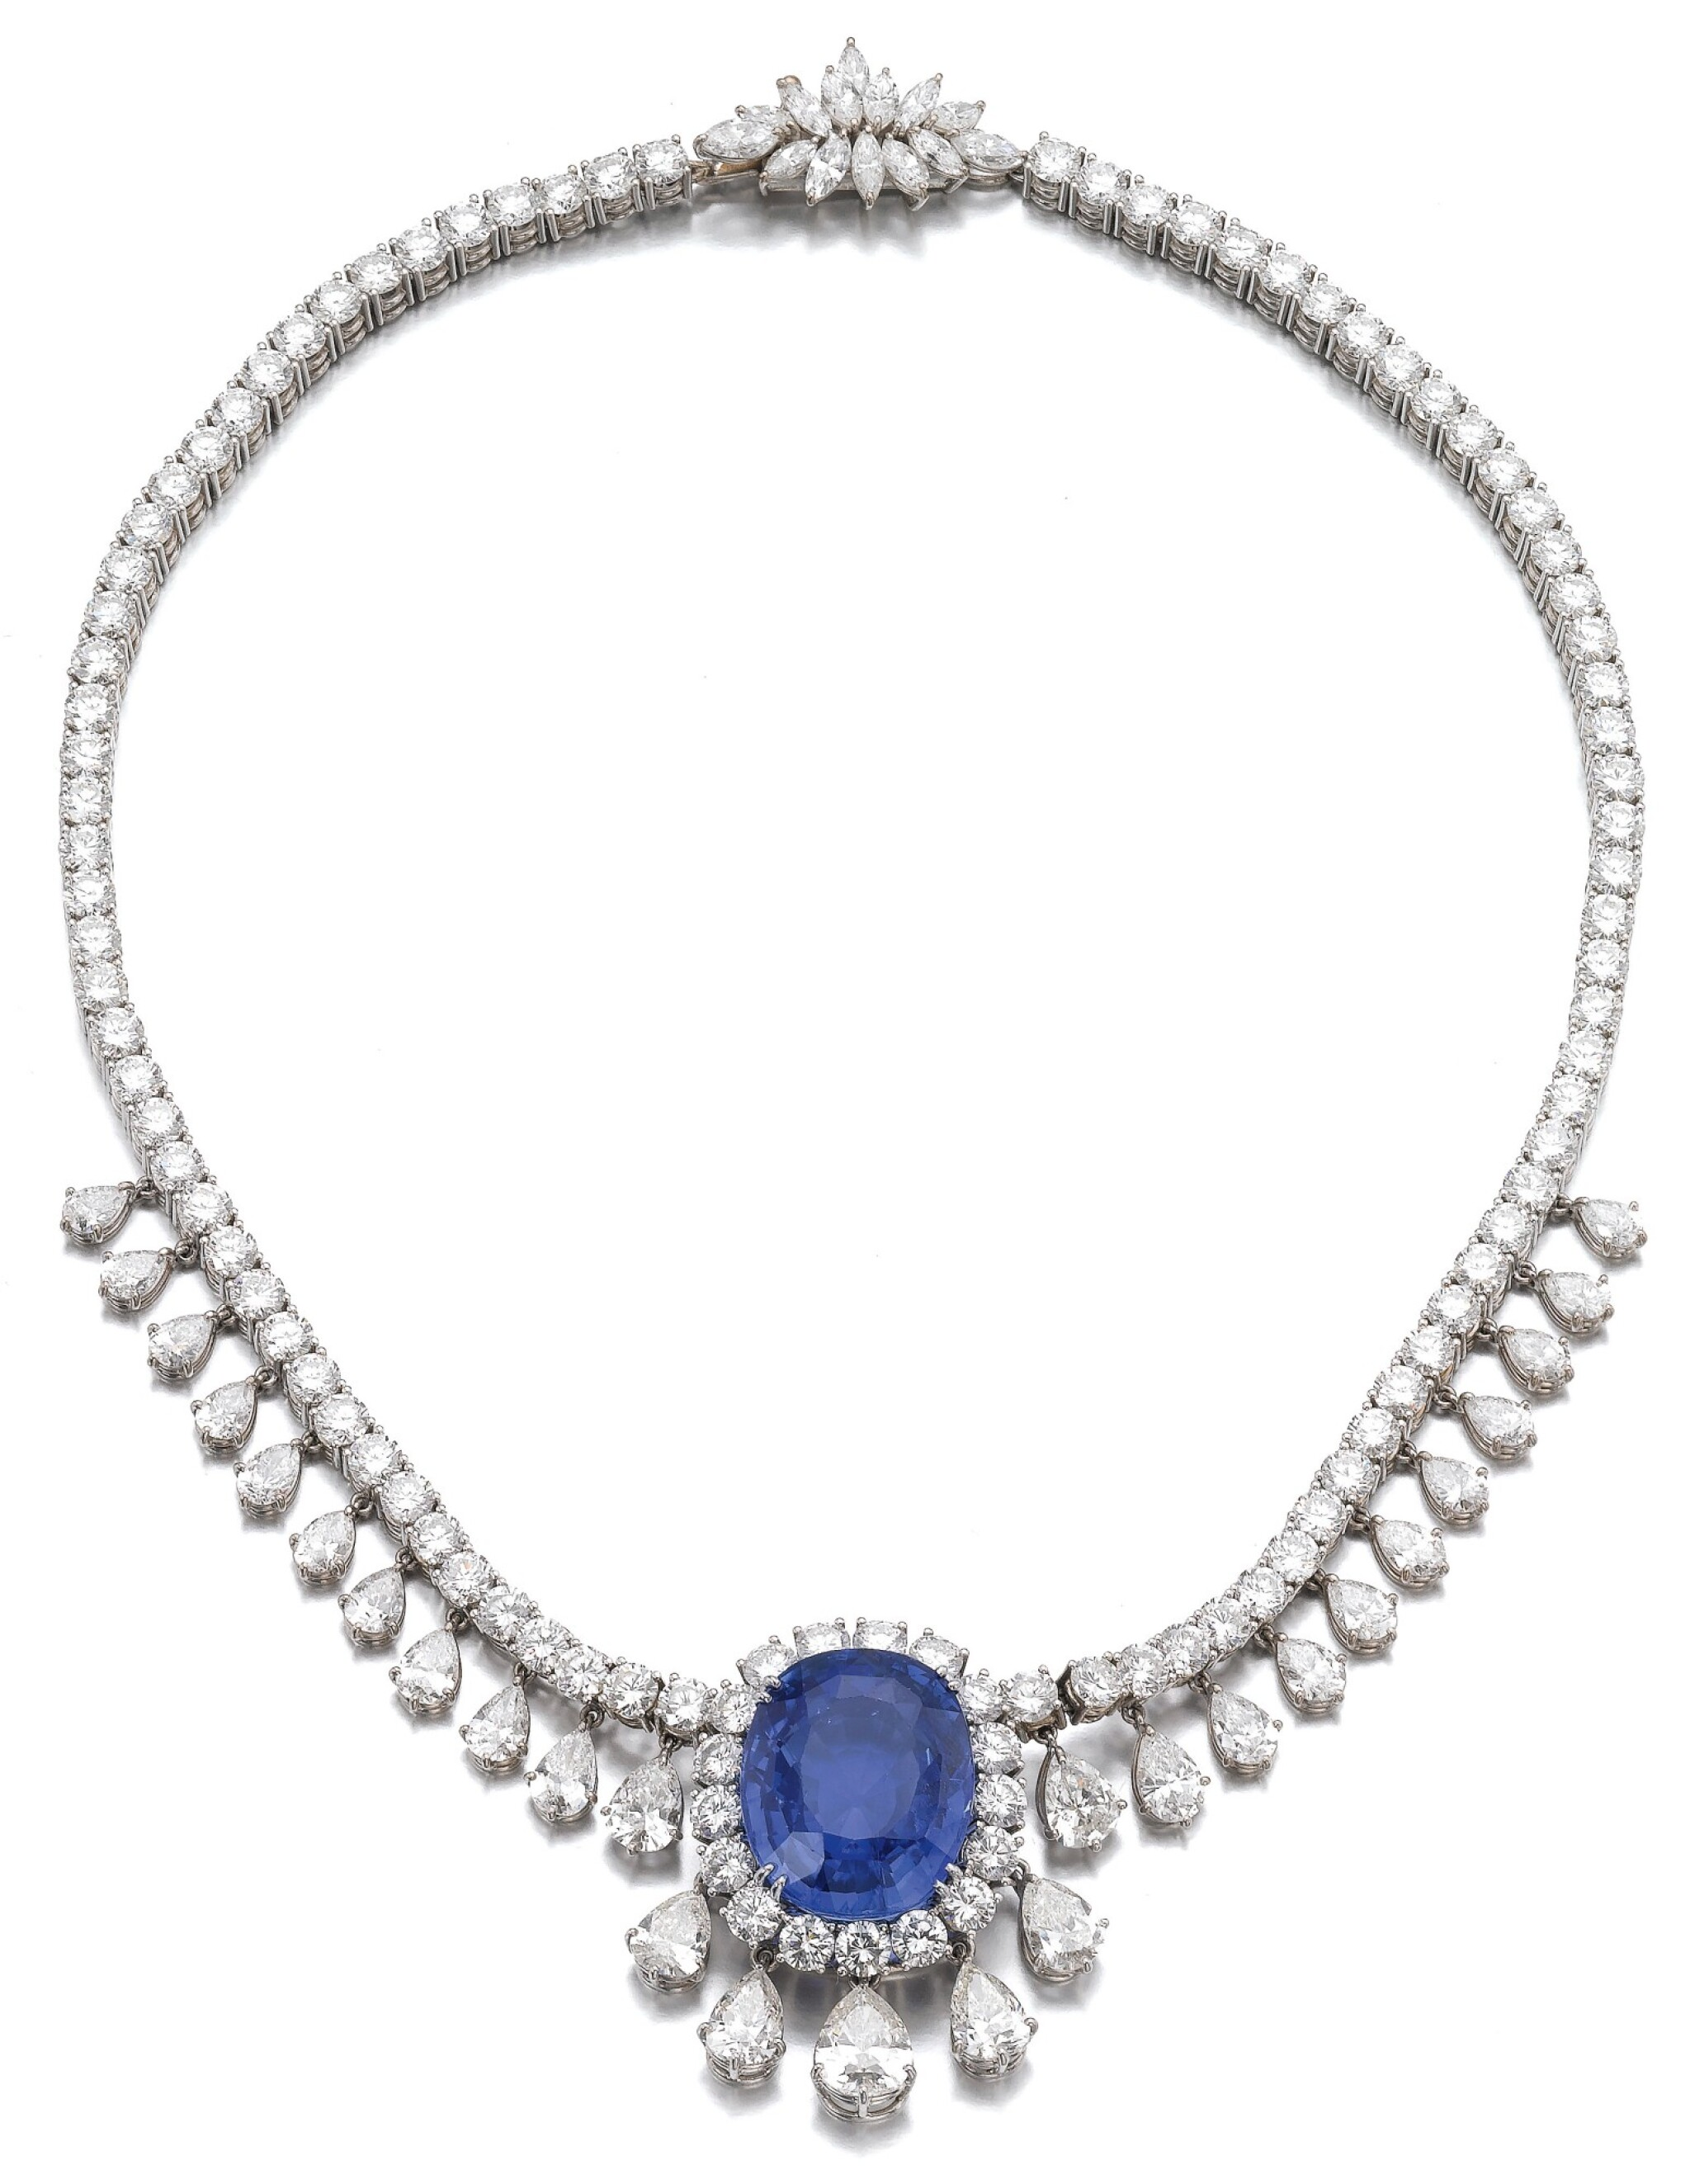 View 1 of Lot 6. SAPPHIRE AND DIAMOND NECKLACE.